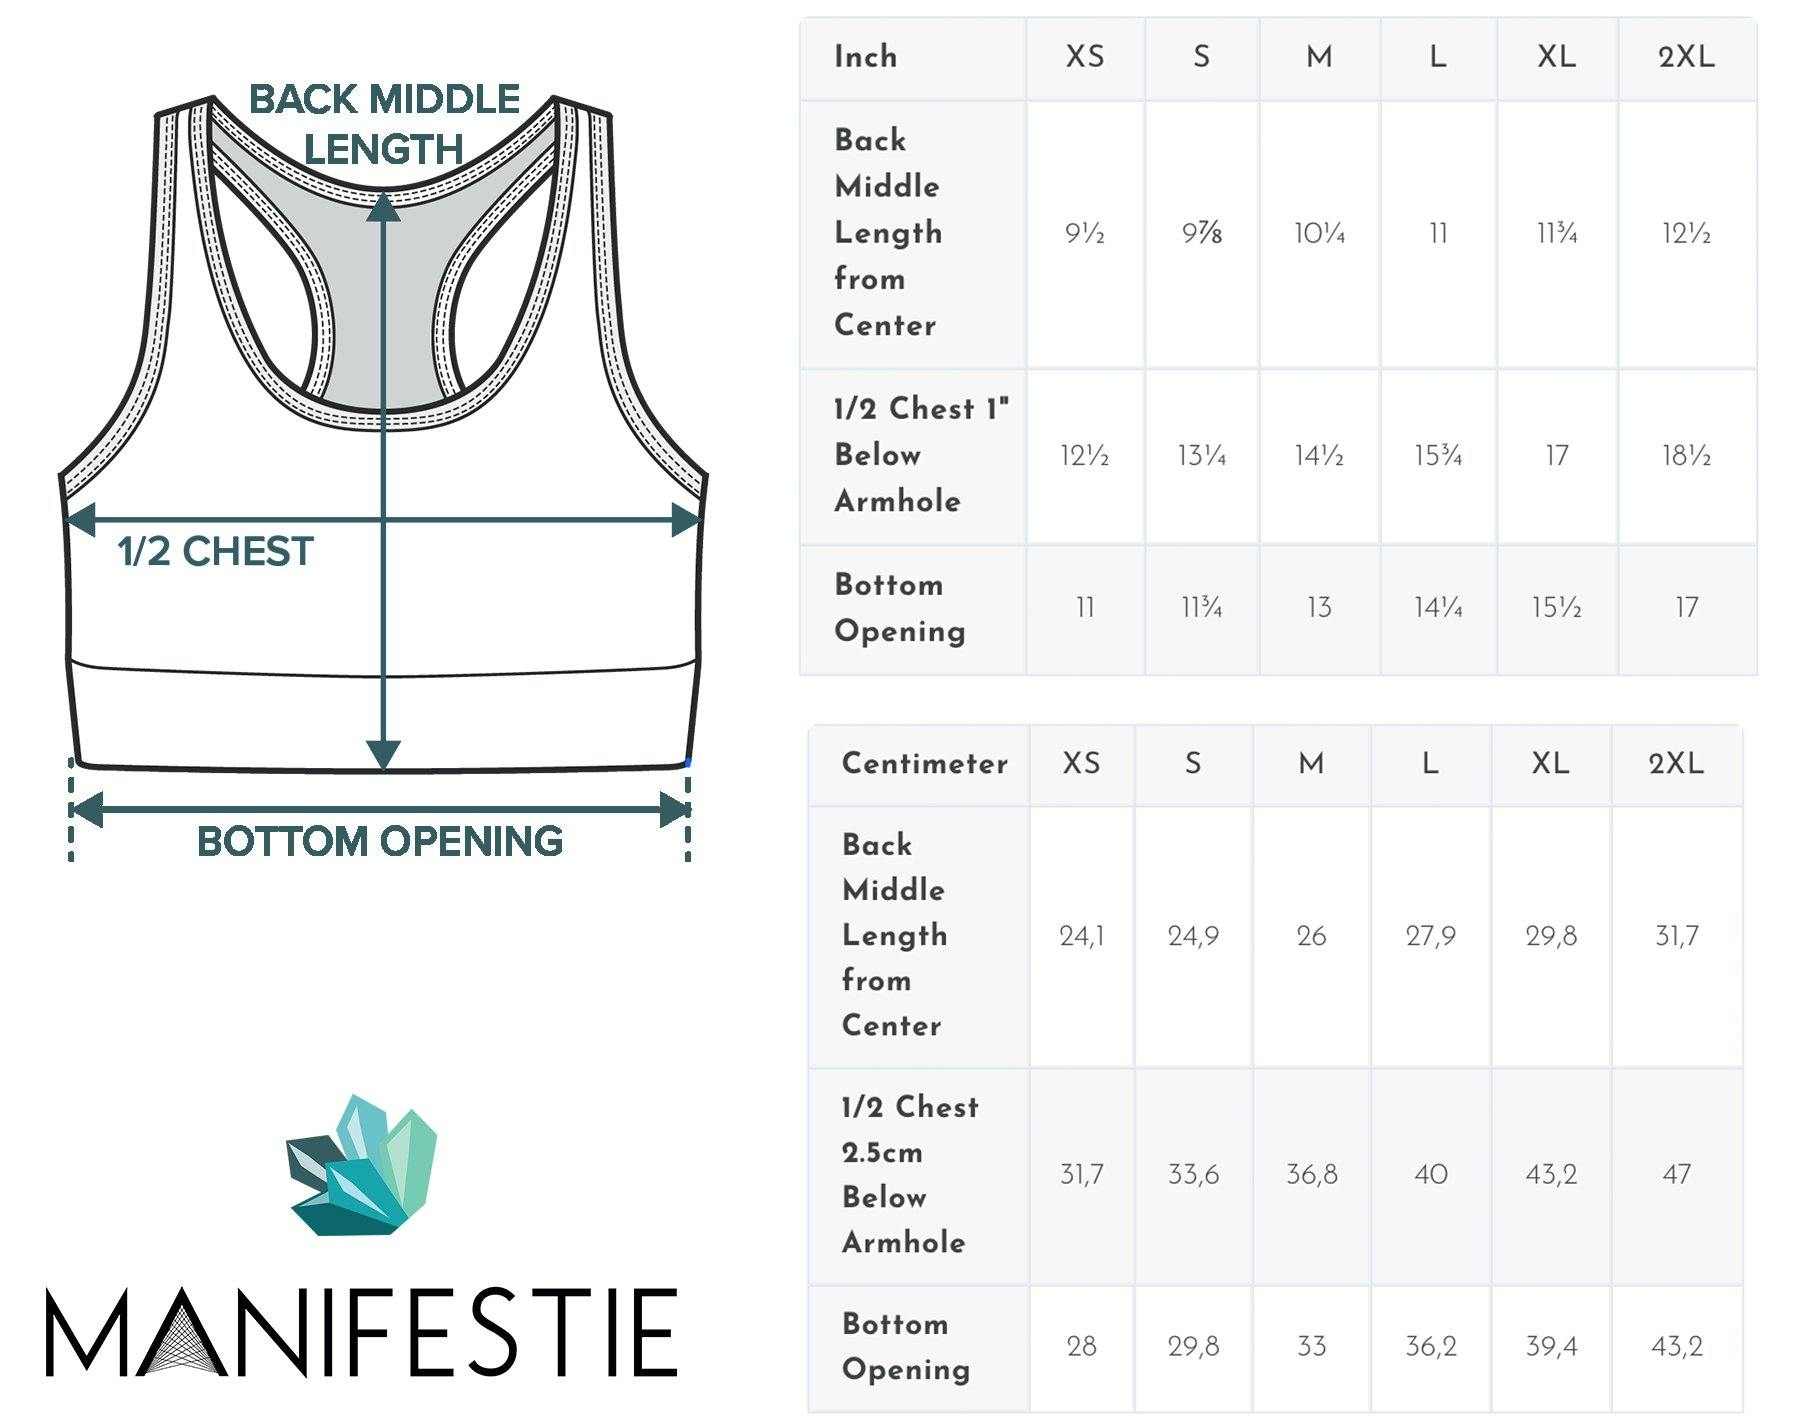 Nightspell Sports Bra - Manifestie